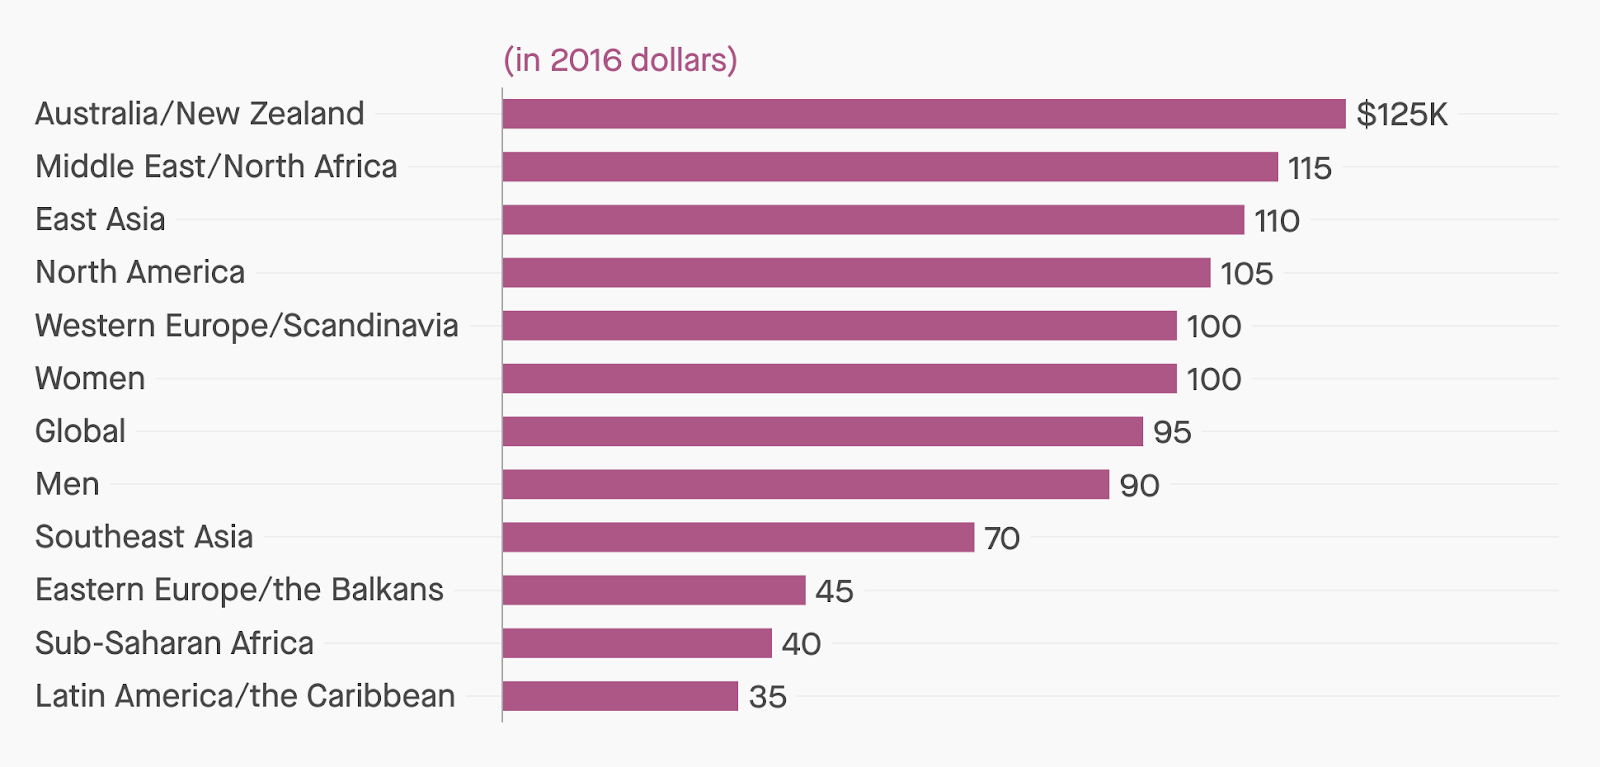 A chart depicting the different satiation points, where more income does not equate to more happiness, in different countries. Australia& New Zealand top the list with $125k and latin america at the bottom with $35k.